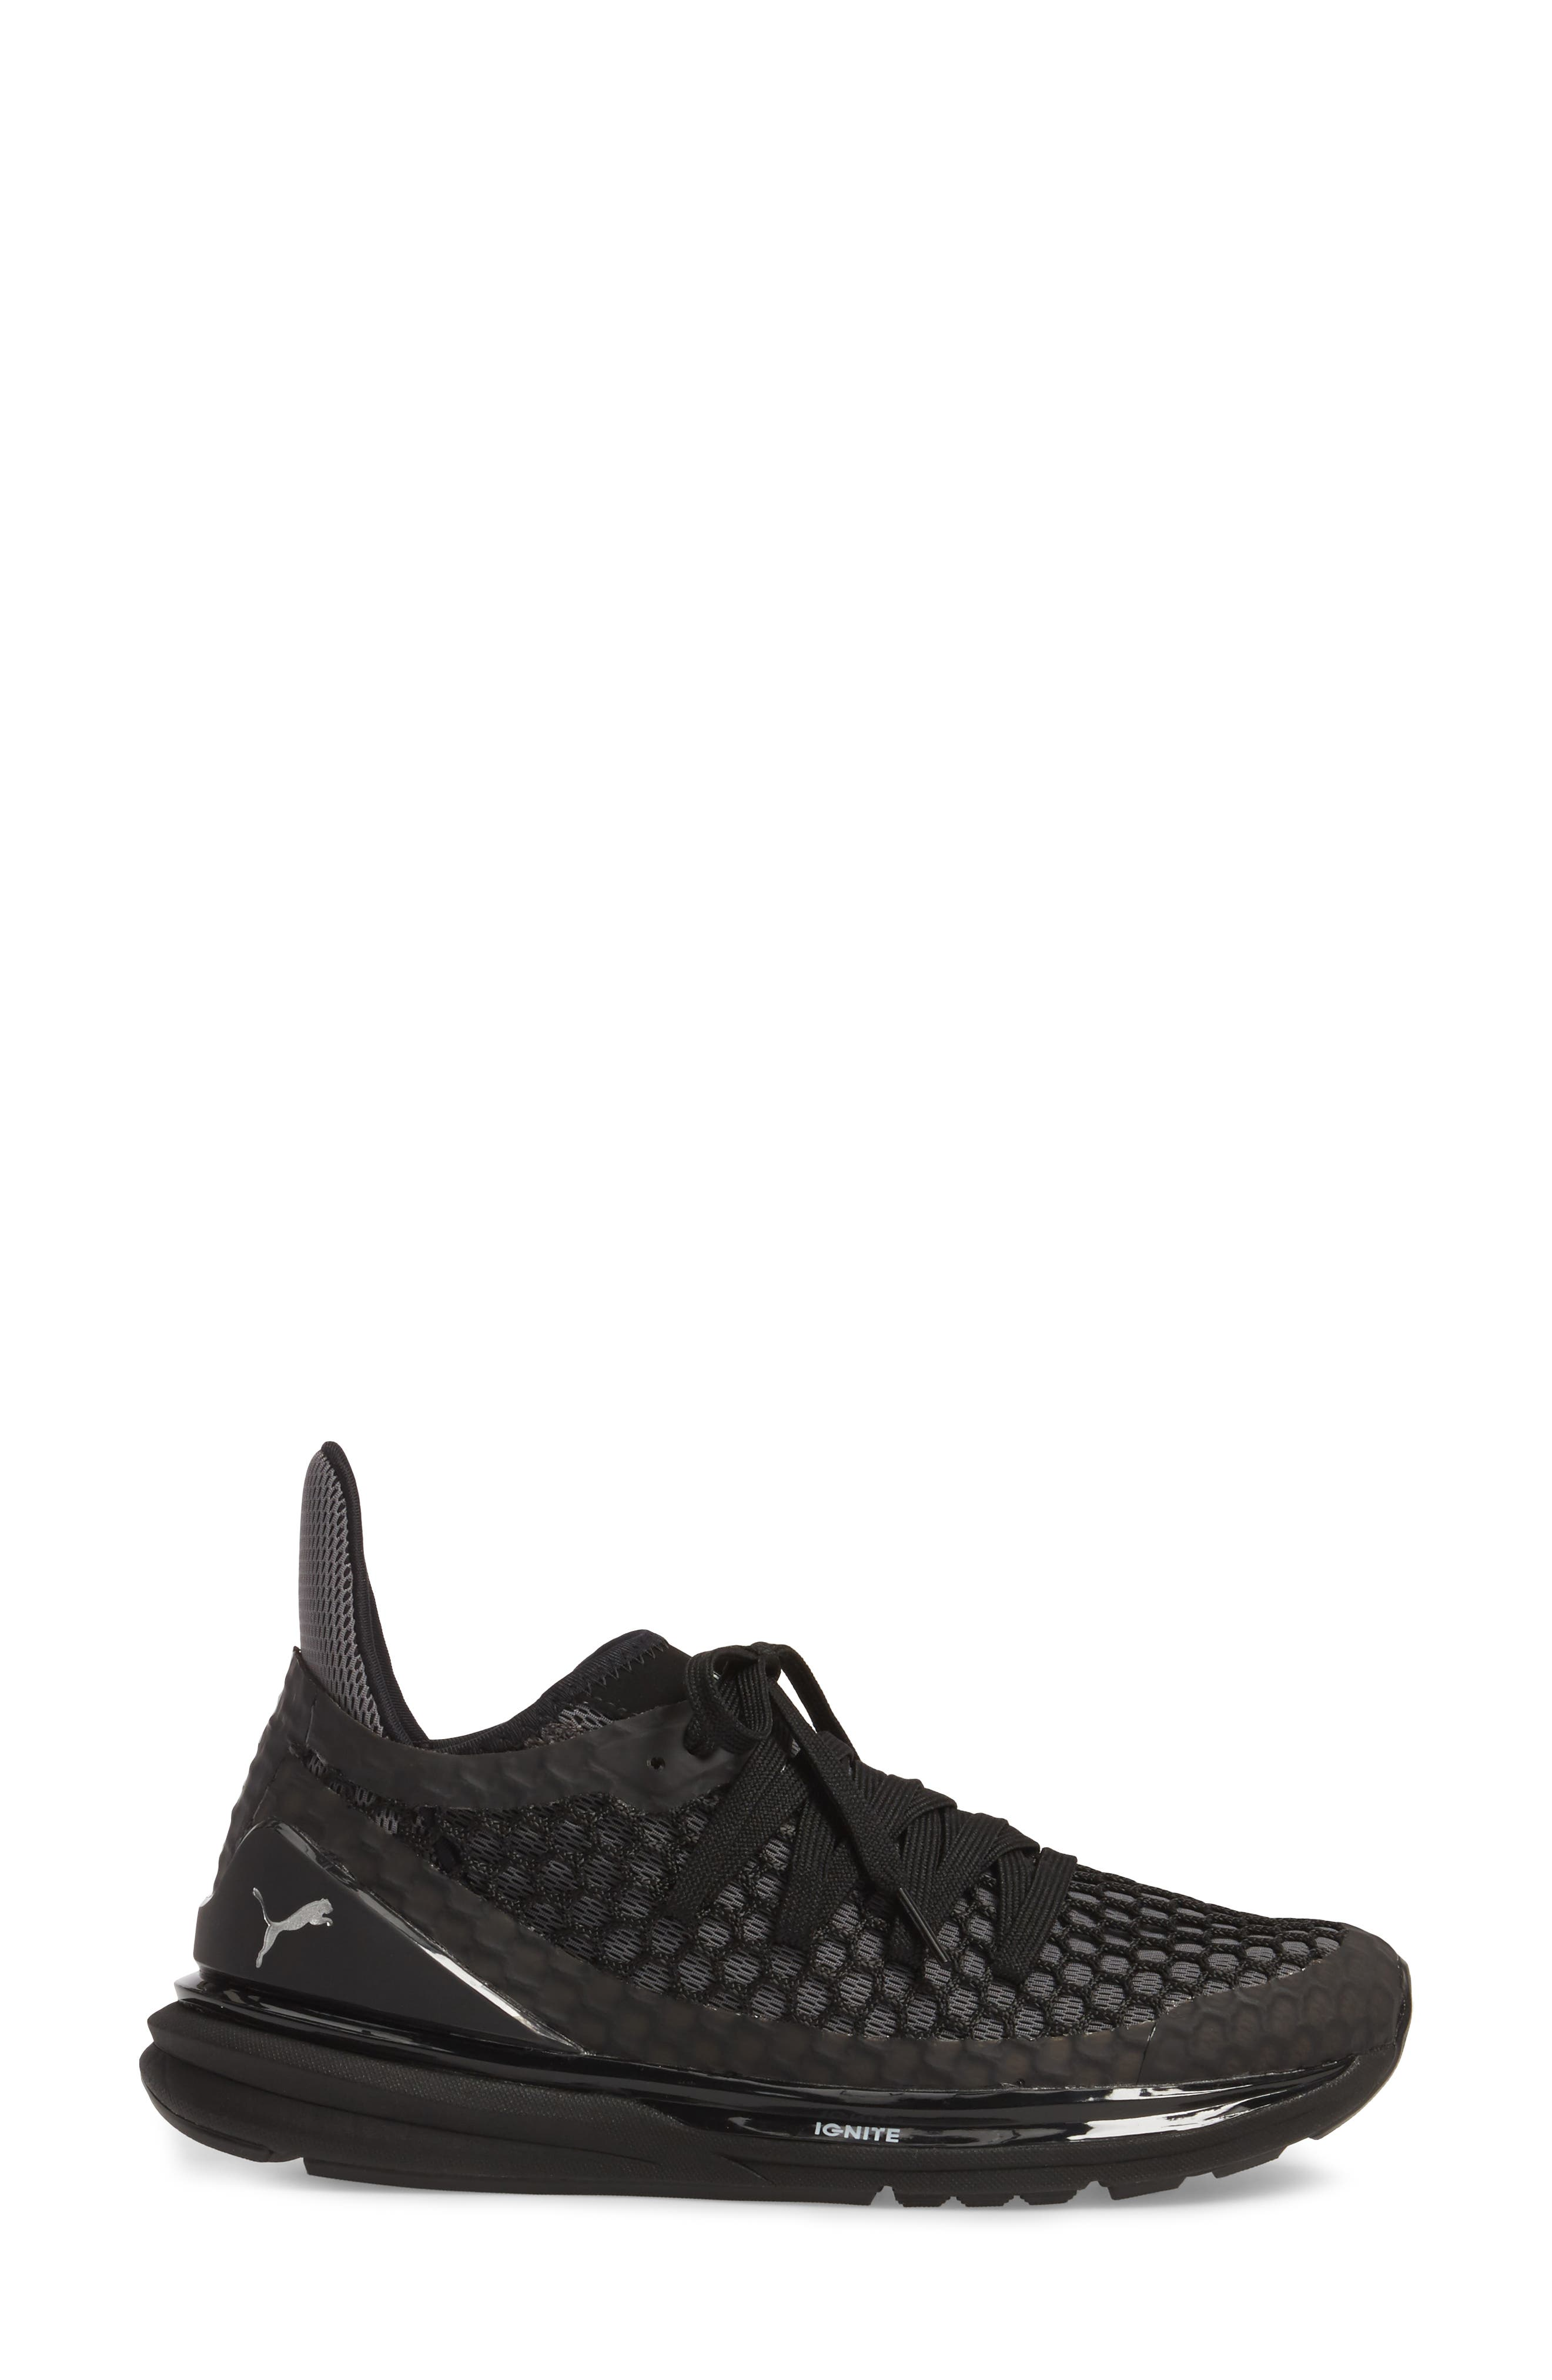 PUMA,                             Ignite Limitless Netfit Running Shoe,                             Alternate thumbnail 3, color,                             001